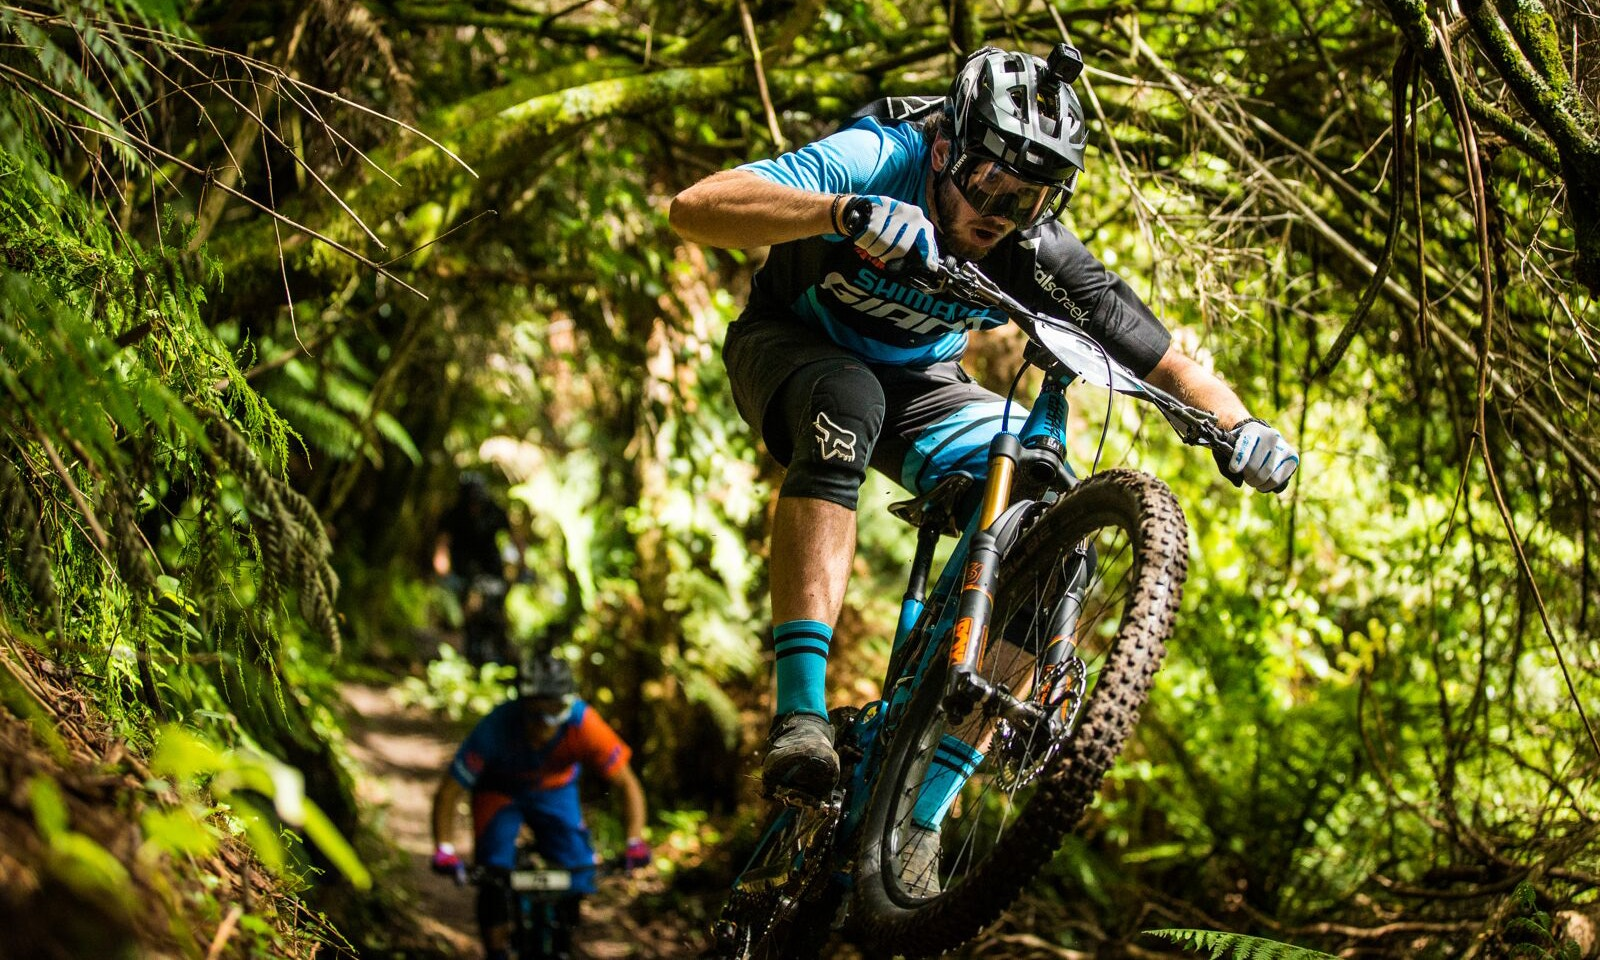 Evolution of Enduro Mountain Bike Racing